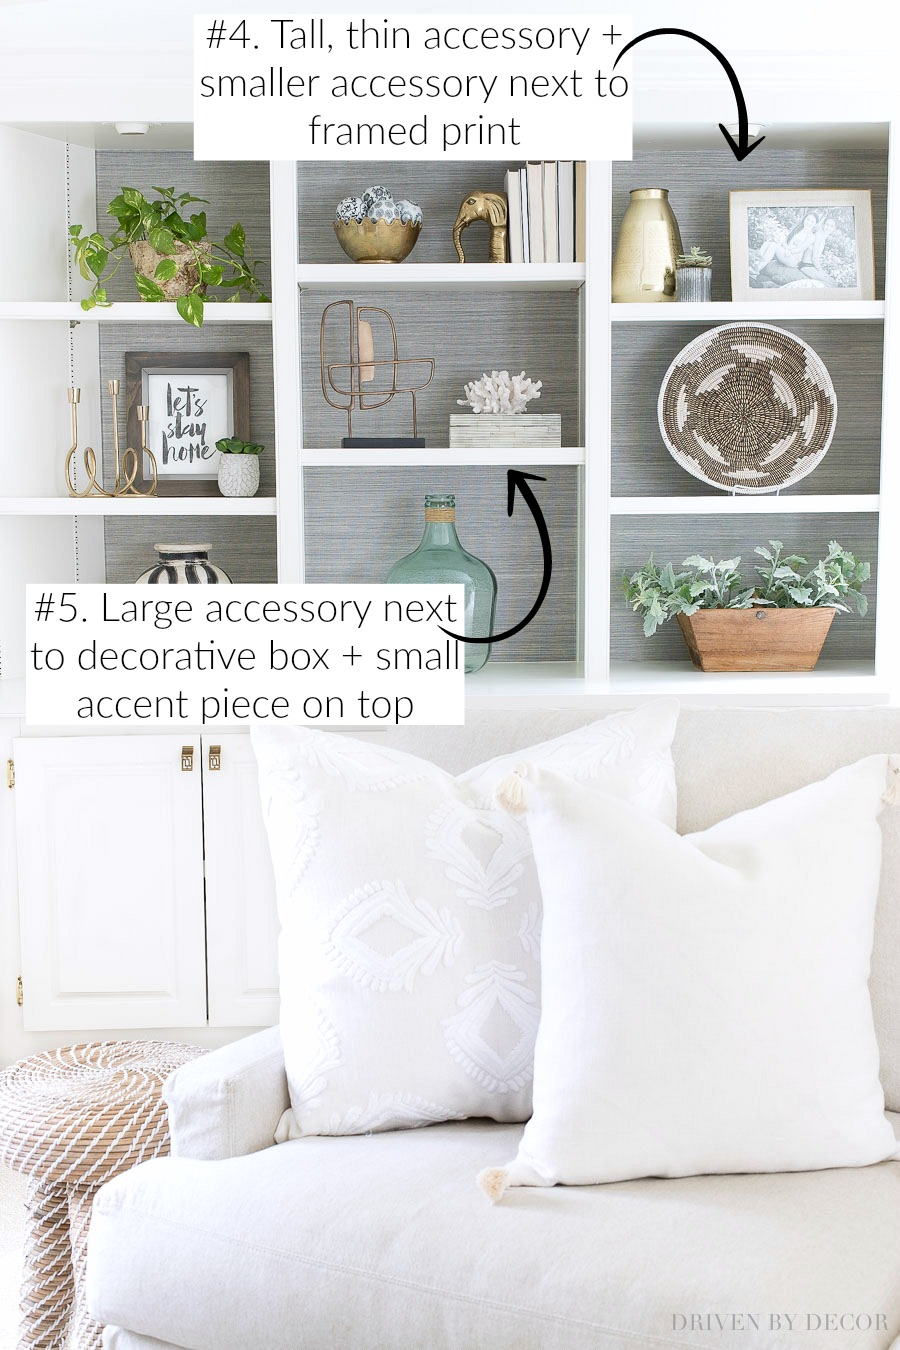 Good SUPER Helpful Tips For Decorating Shelves And Bookcases!